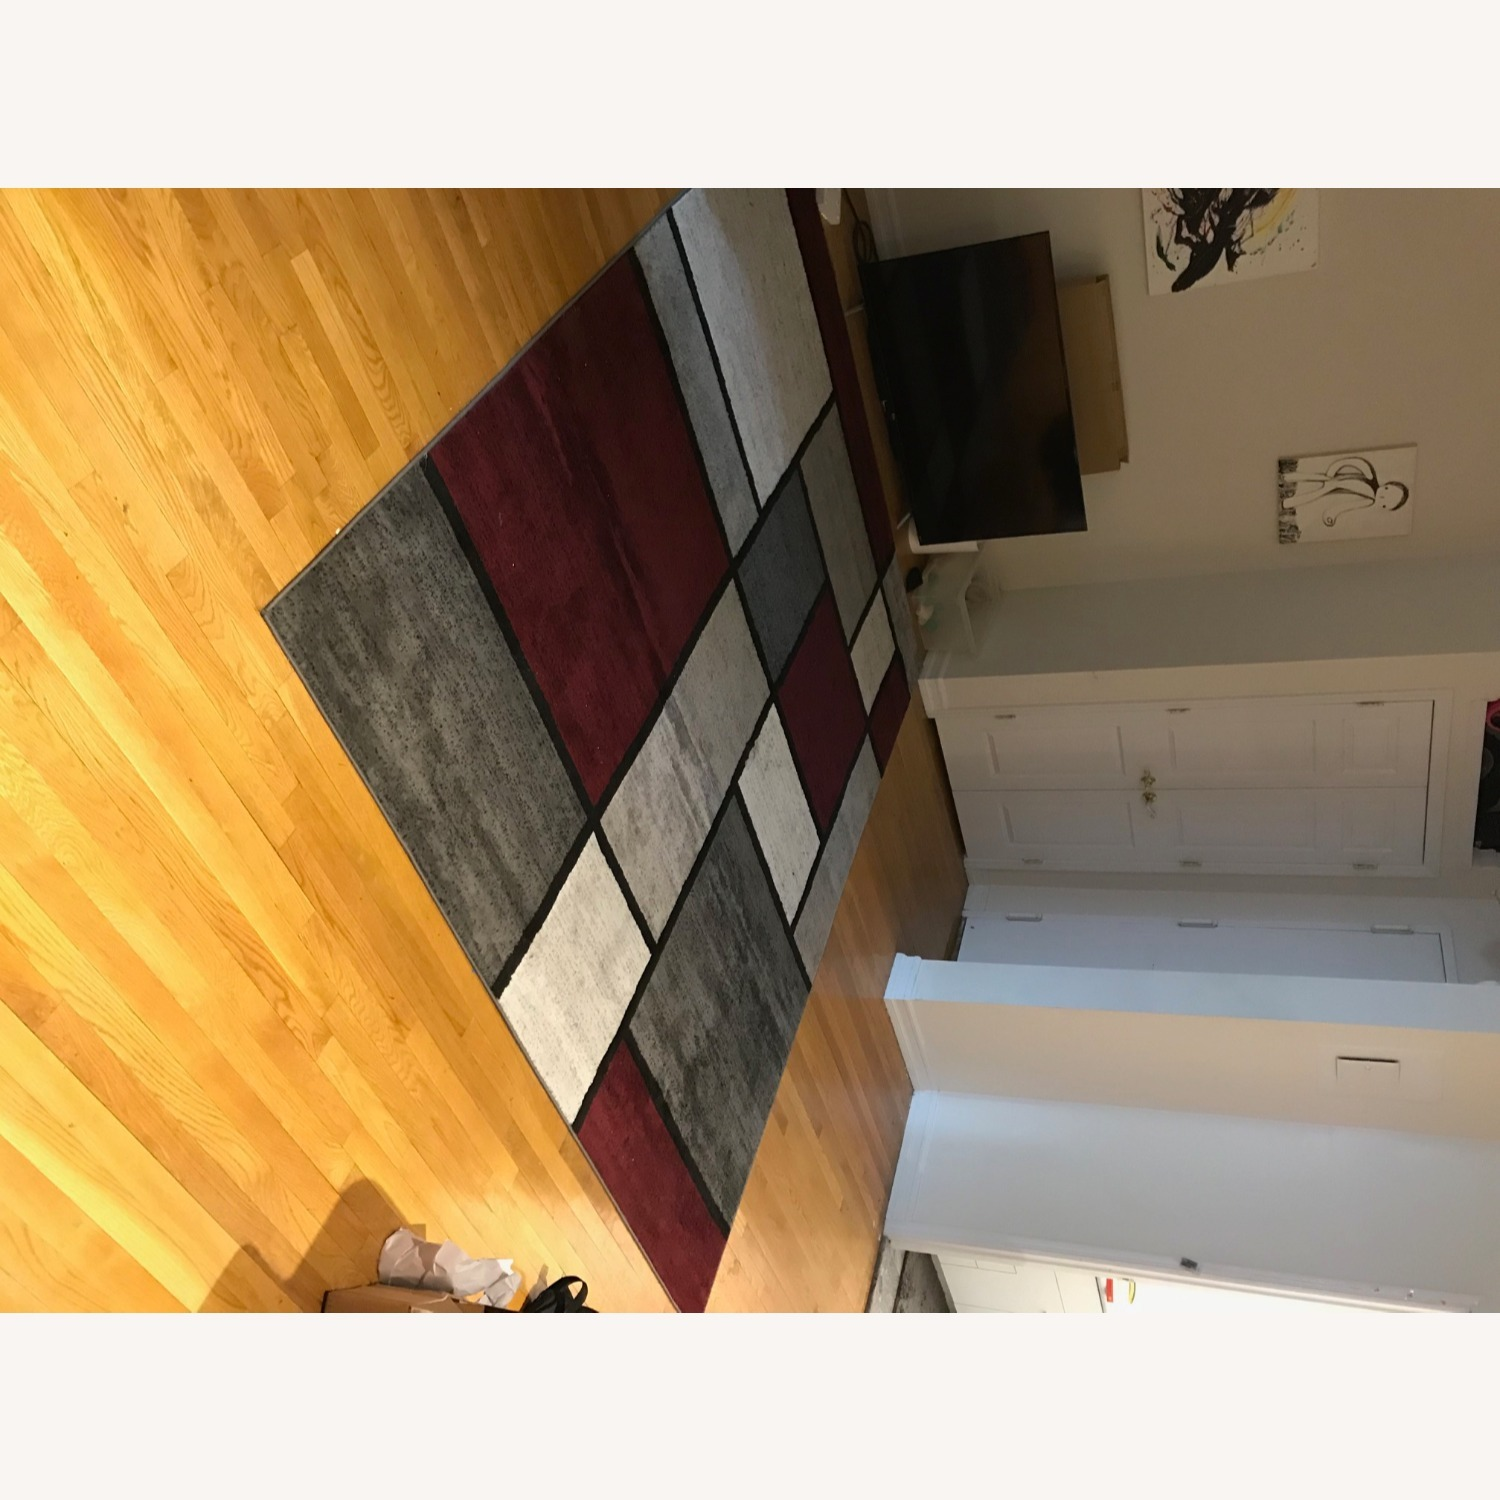 8' x 10' Red White and Grey Area Rug w Rug Pad - image-17